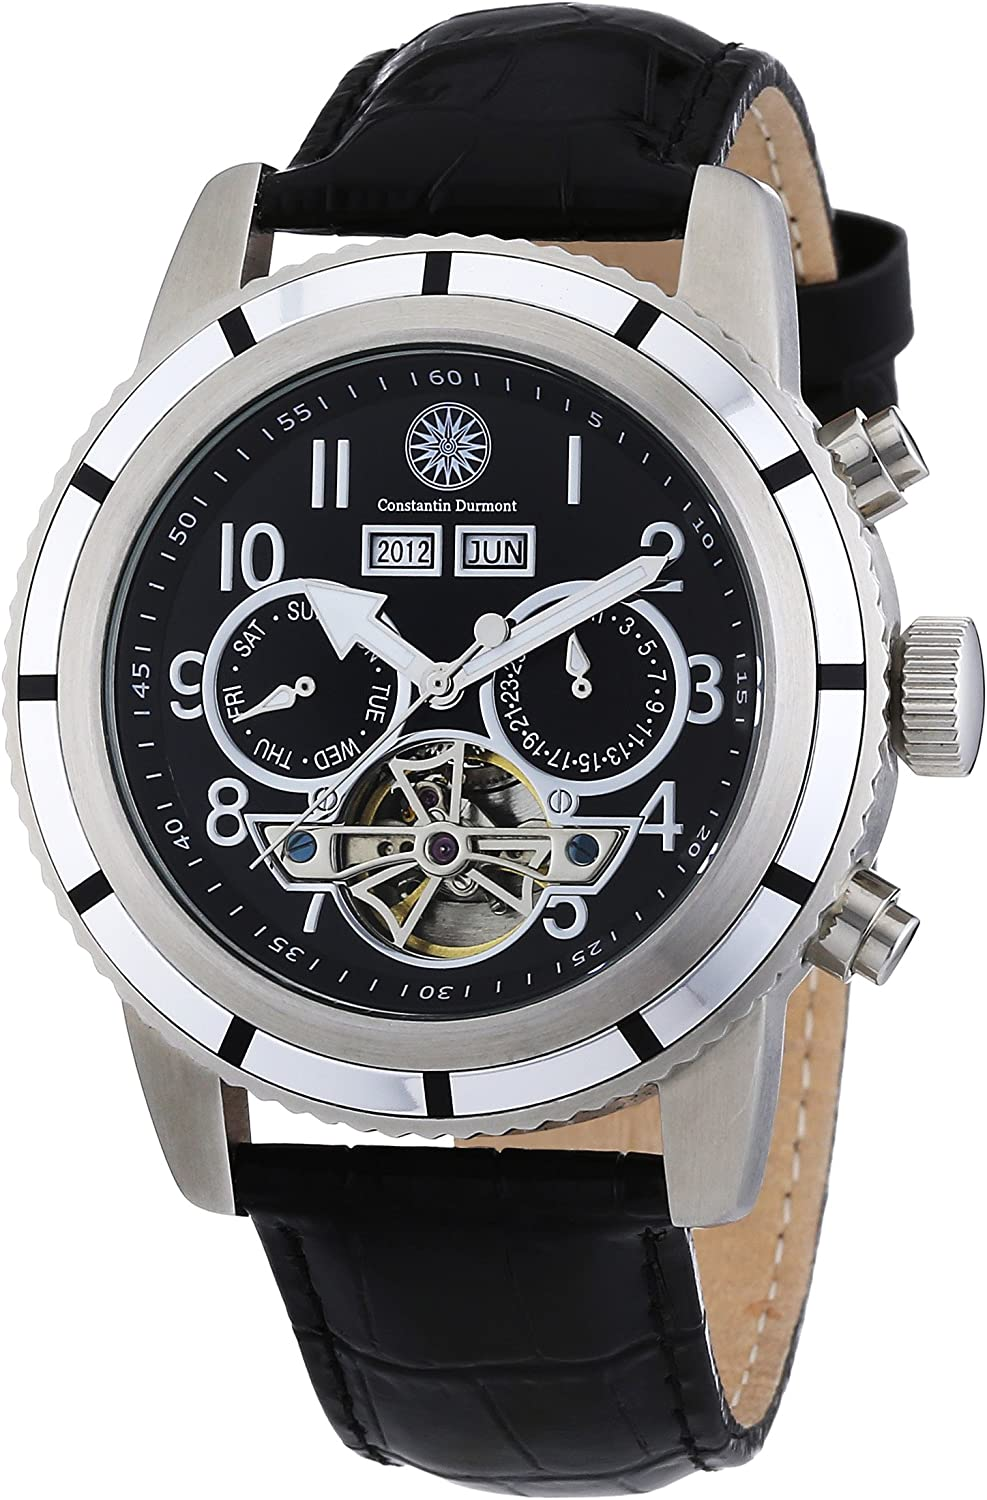 Constantin Durmont CD-PUEB-AT-LT-STSL-BK - Reloj analógic